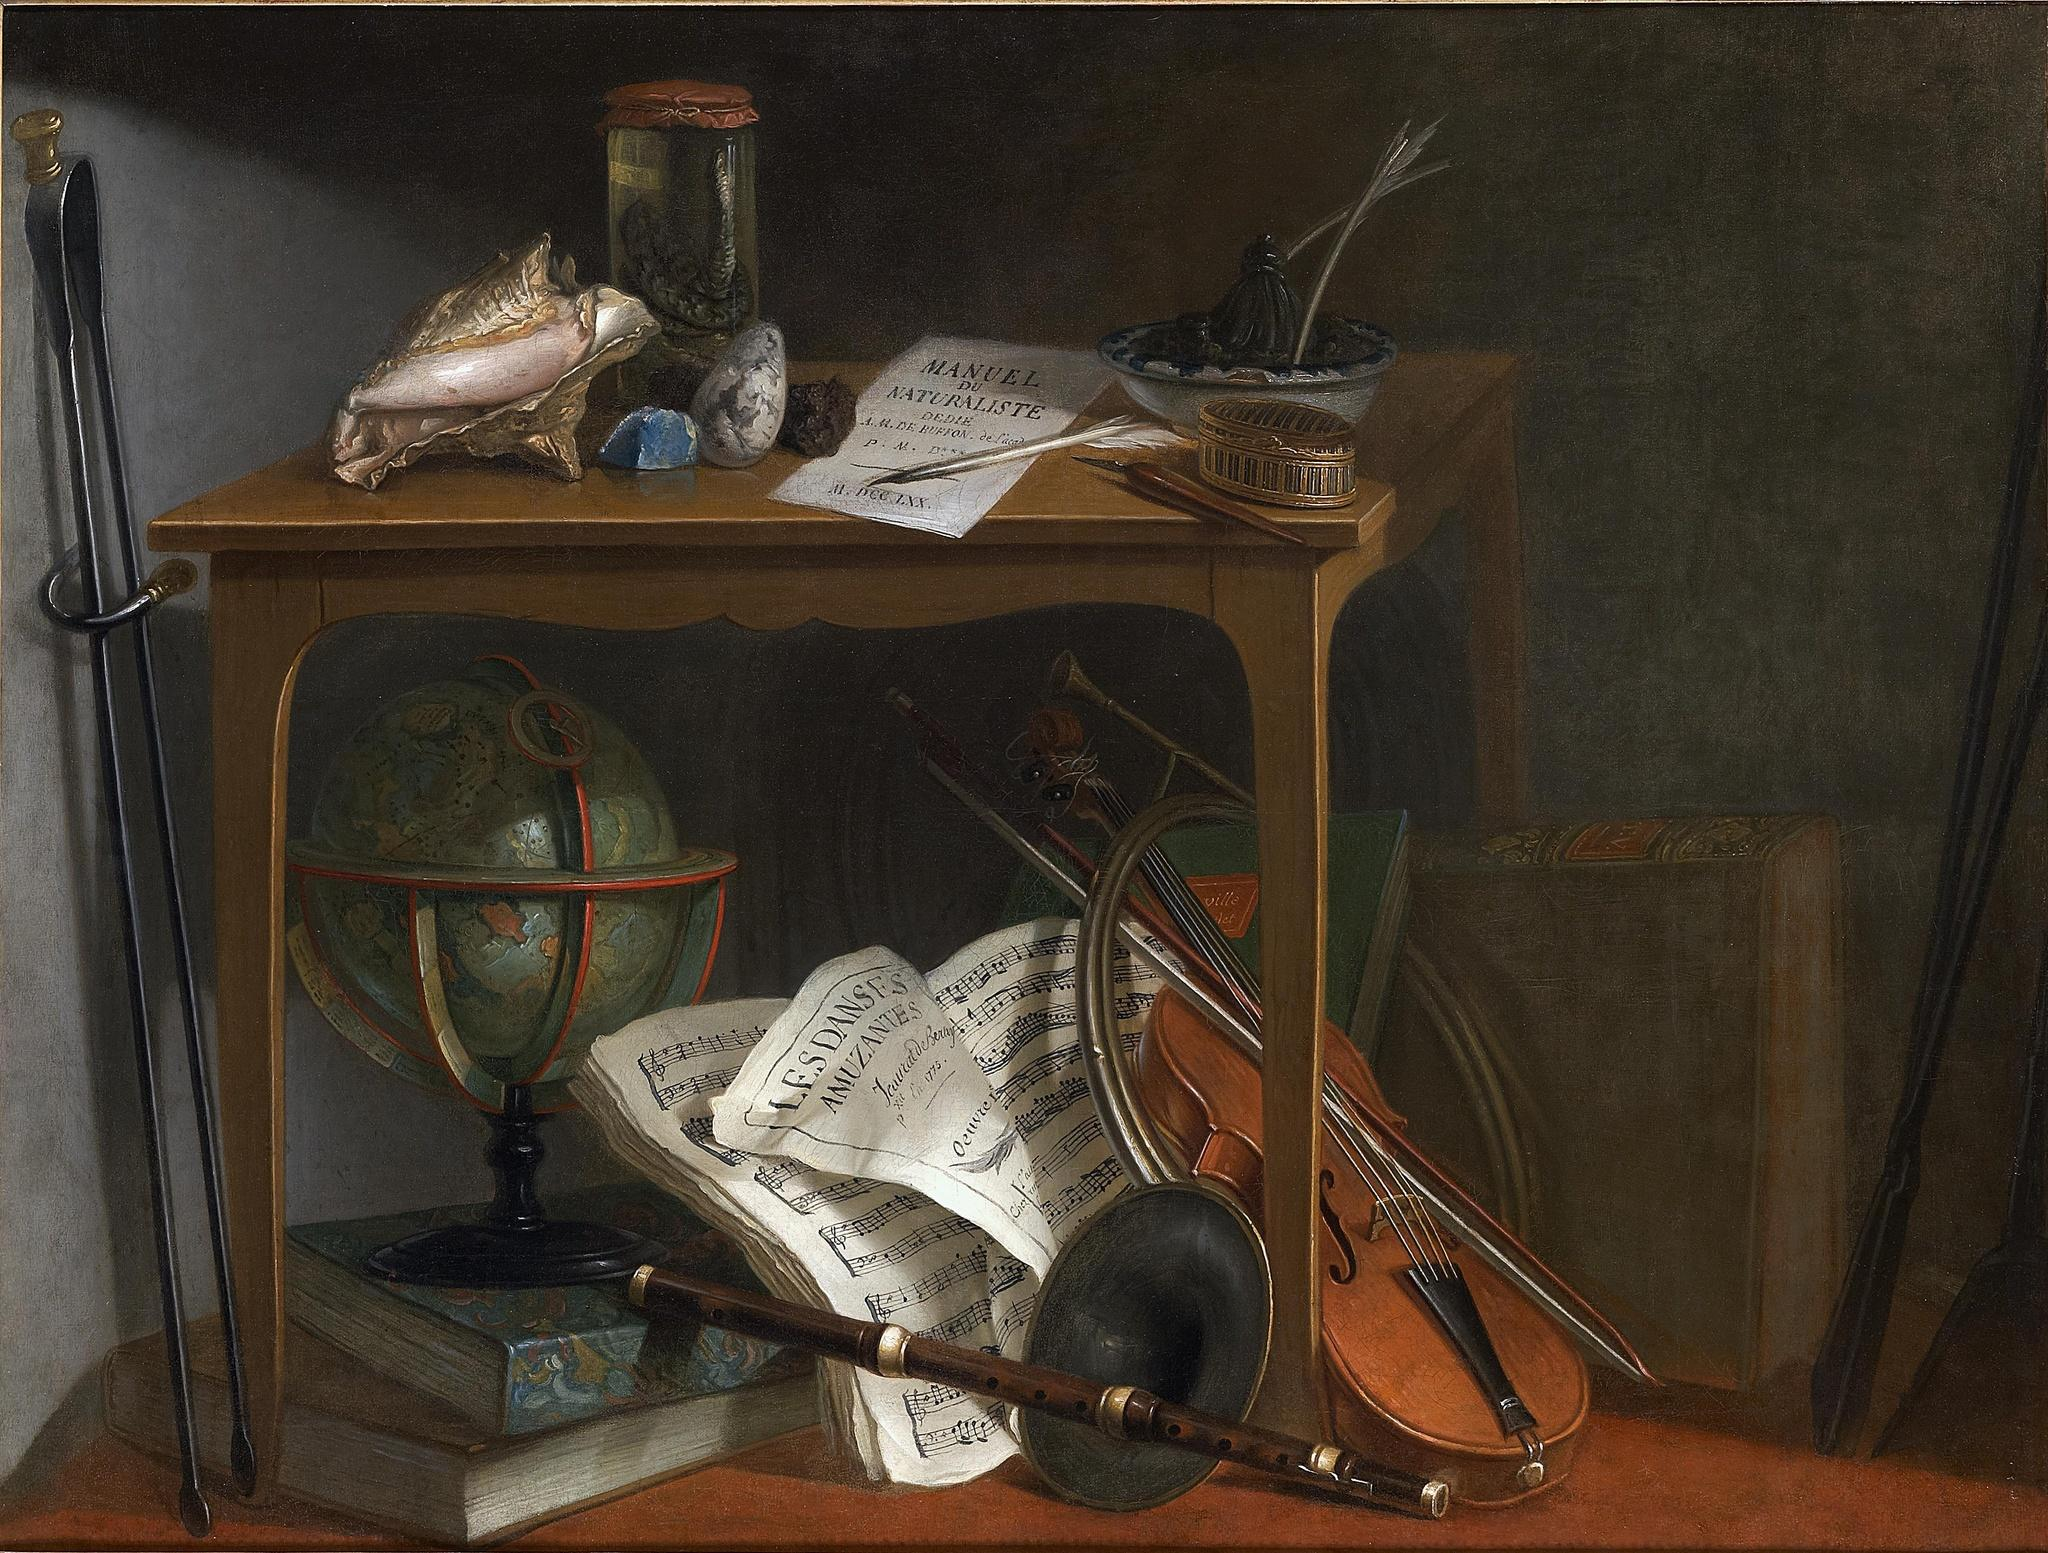 One Of A Pair Of Devants-de Cheminée: Naturalist Manual And Objects Resting On A Table